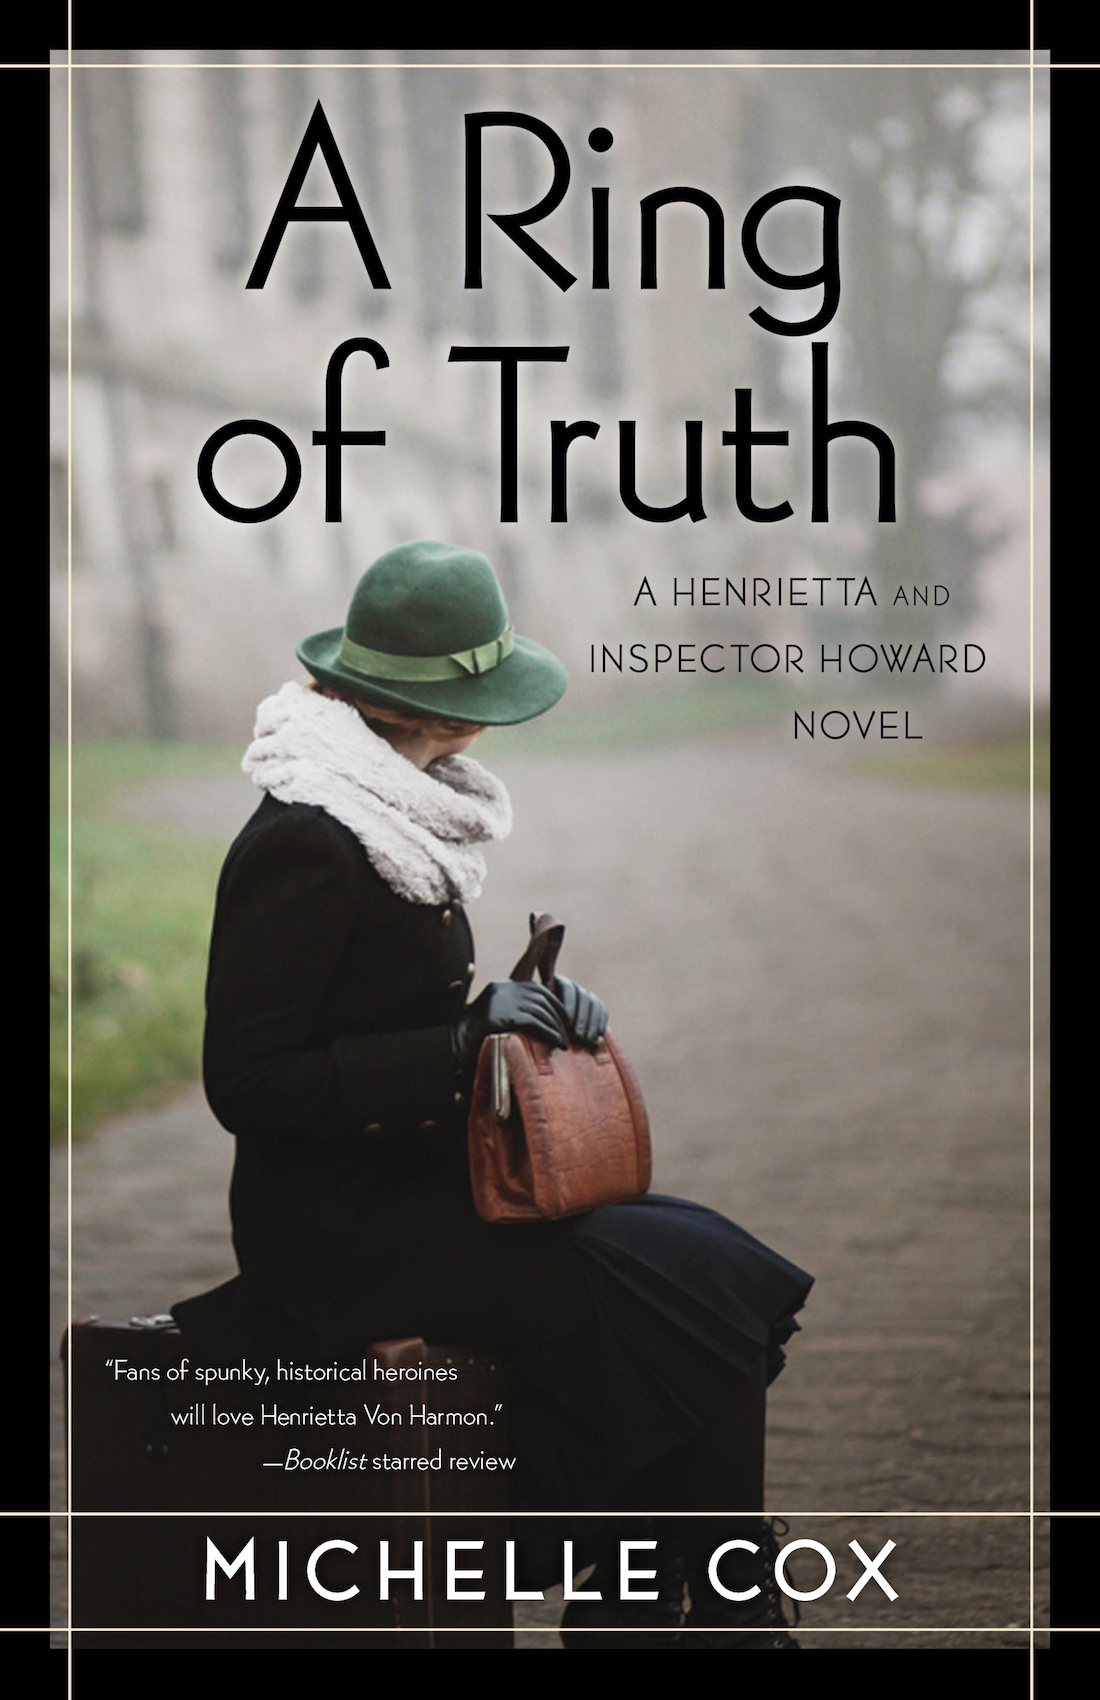 a-ring-of-truth-michelle-cox-author-mystery-historical-fiction-book-cover